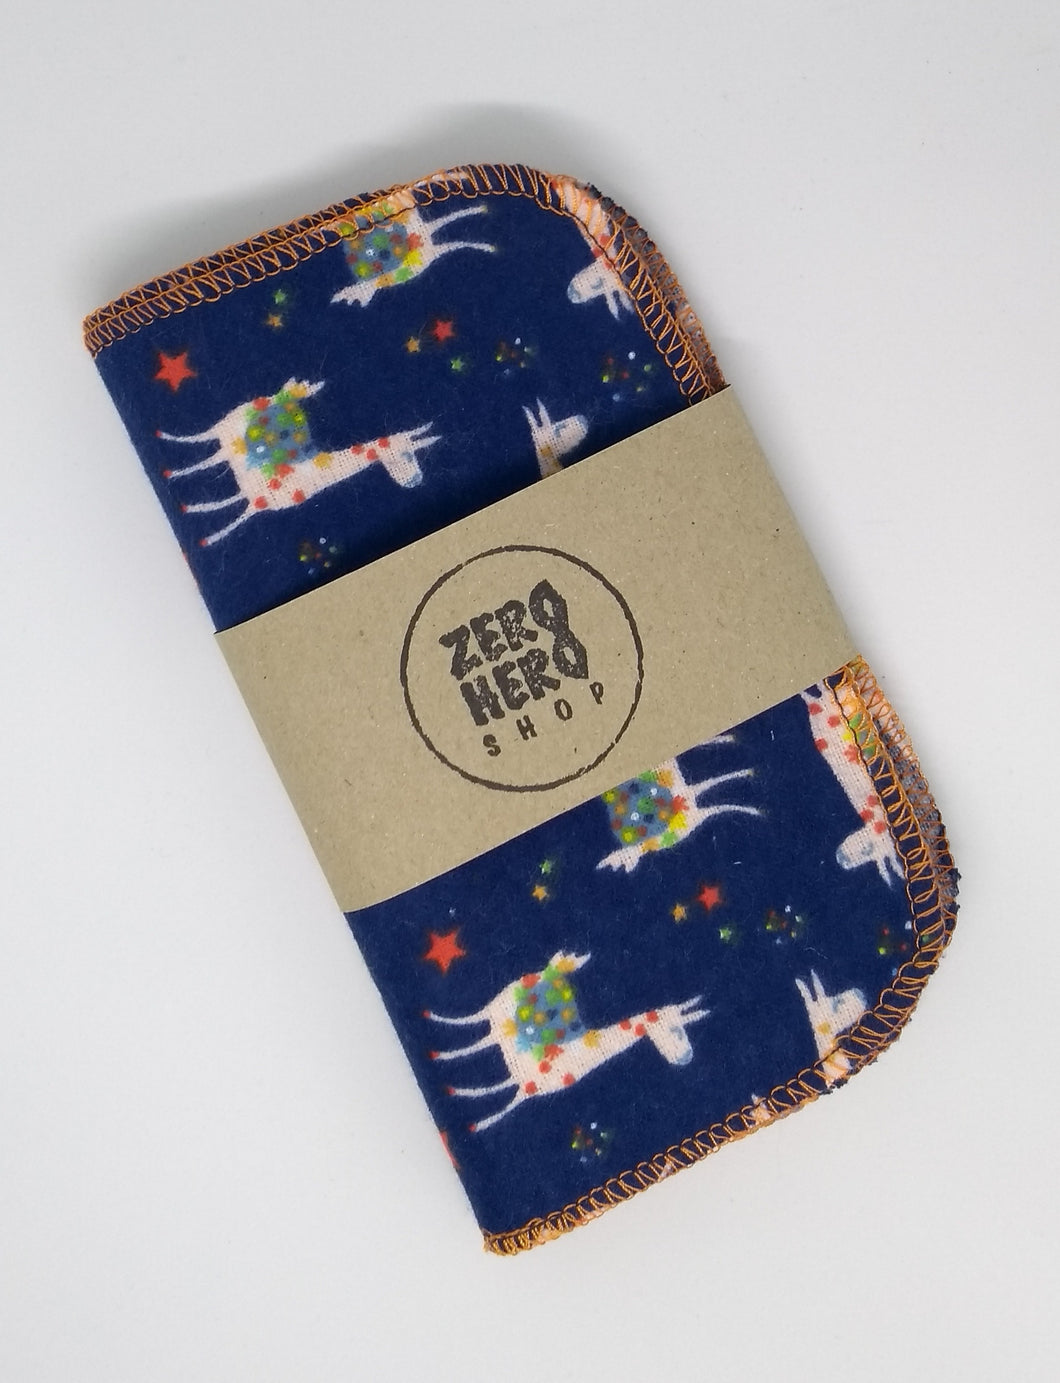 Brushed Cotton Reusable Wipes- Navy Blue Llama